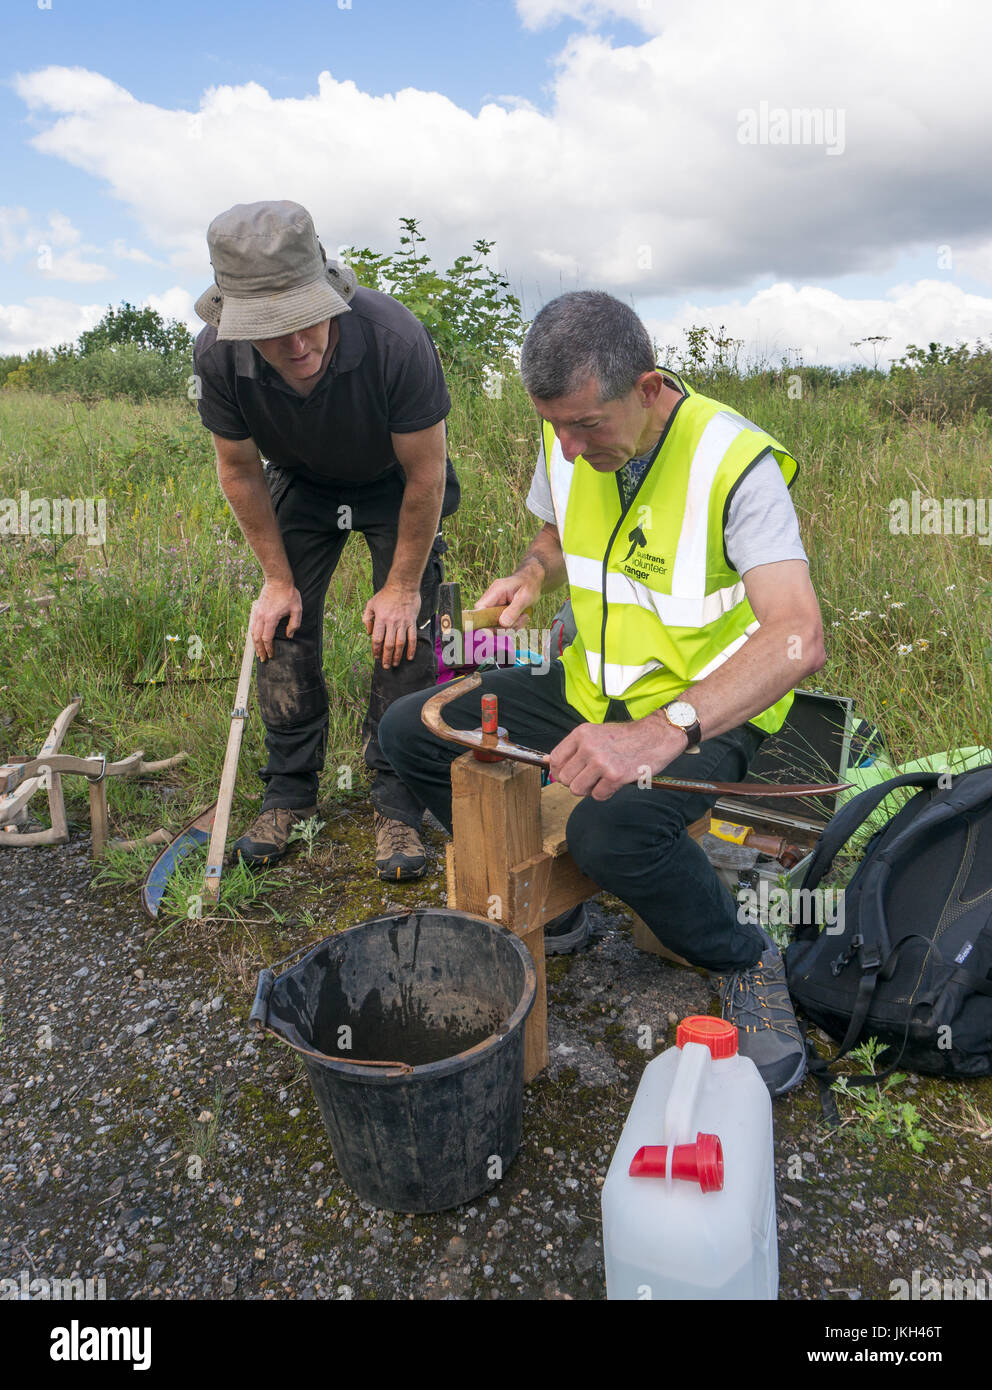 Instructor watching Sustrans volunteer sharpen a scythe by peening the blade, England, UK - Stock Image